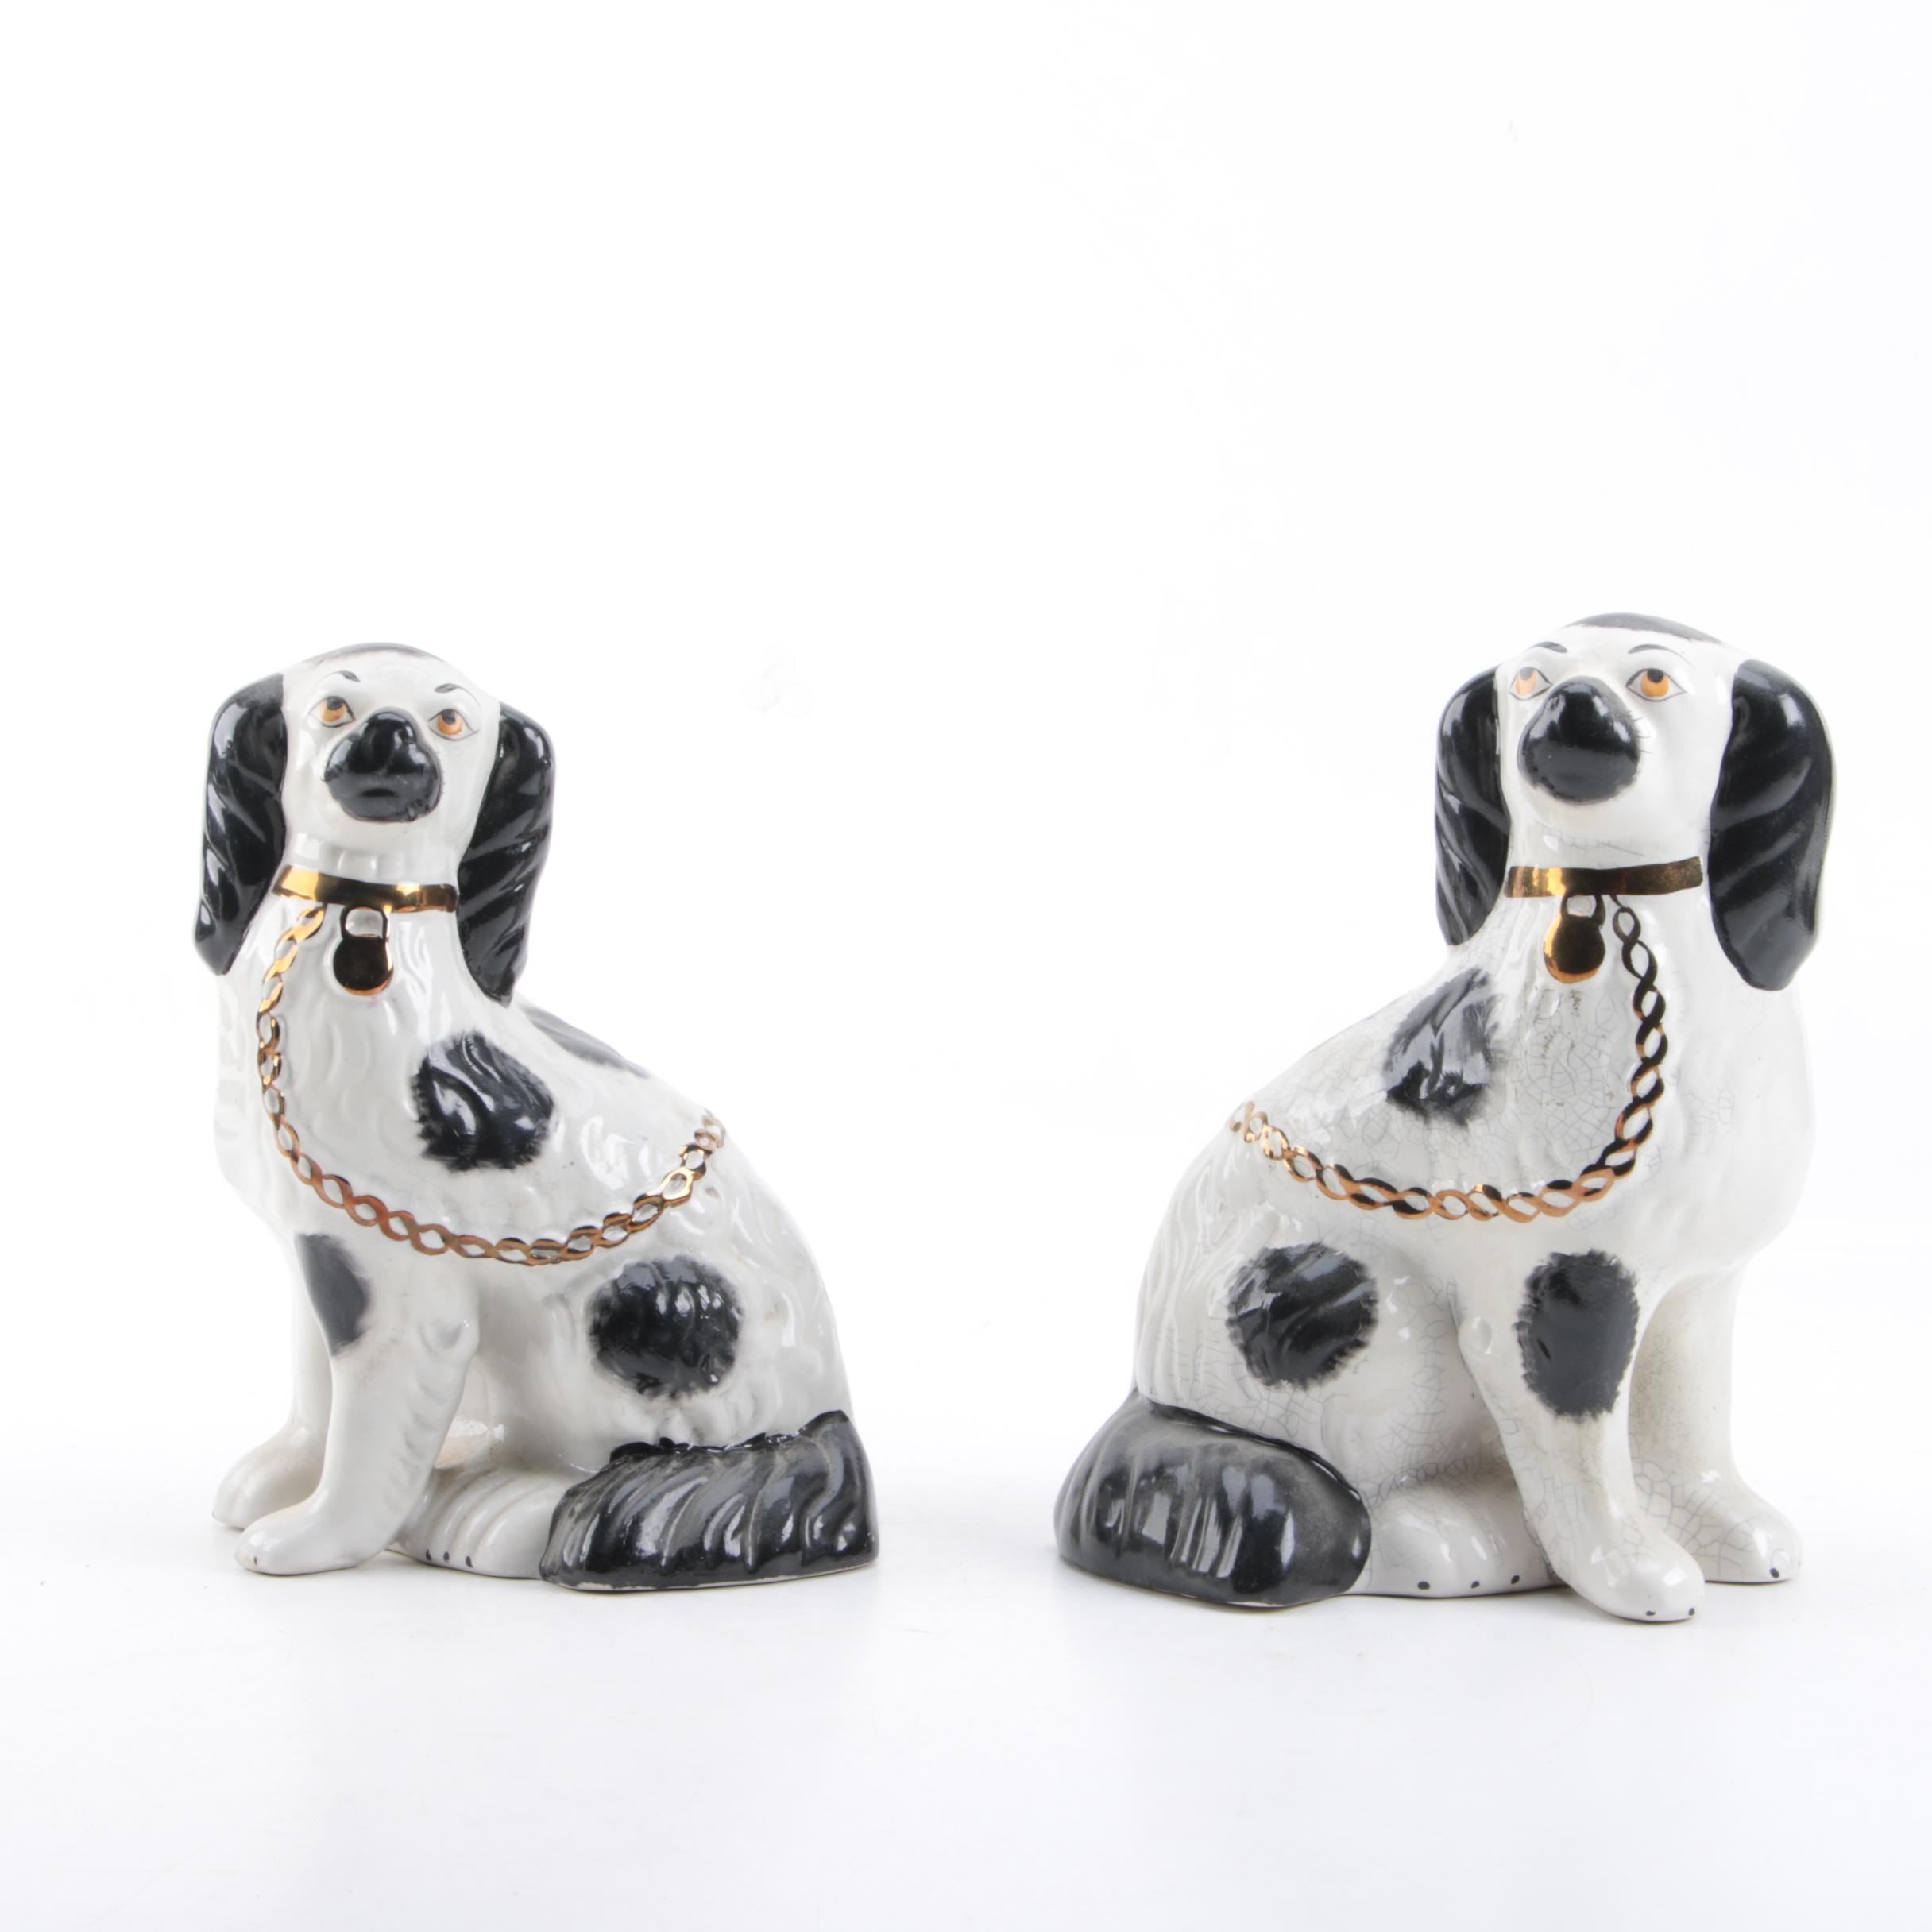 Pair of Staffordshire Style Black and White Ceramic Dog Figurines